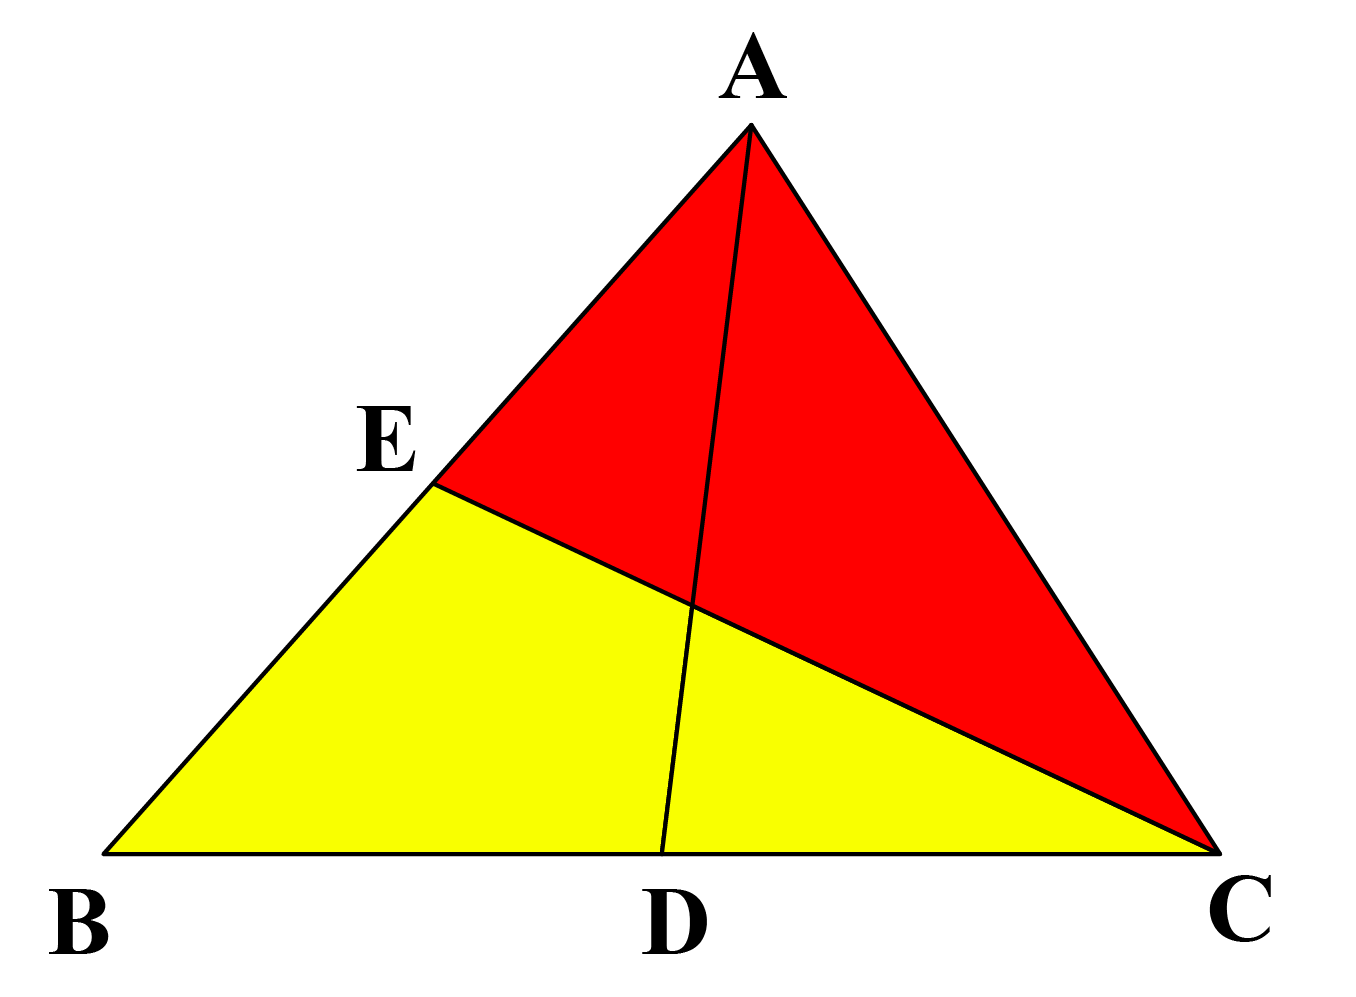 AD and EC are two medians of triangle ABC